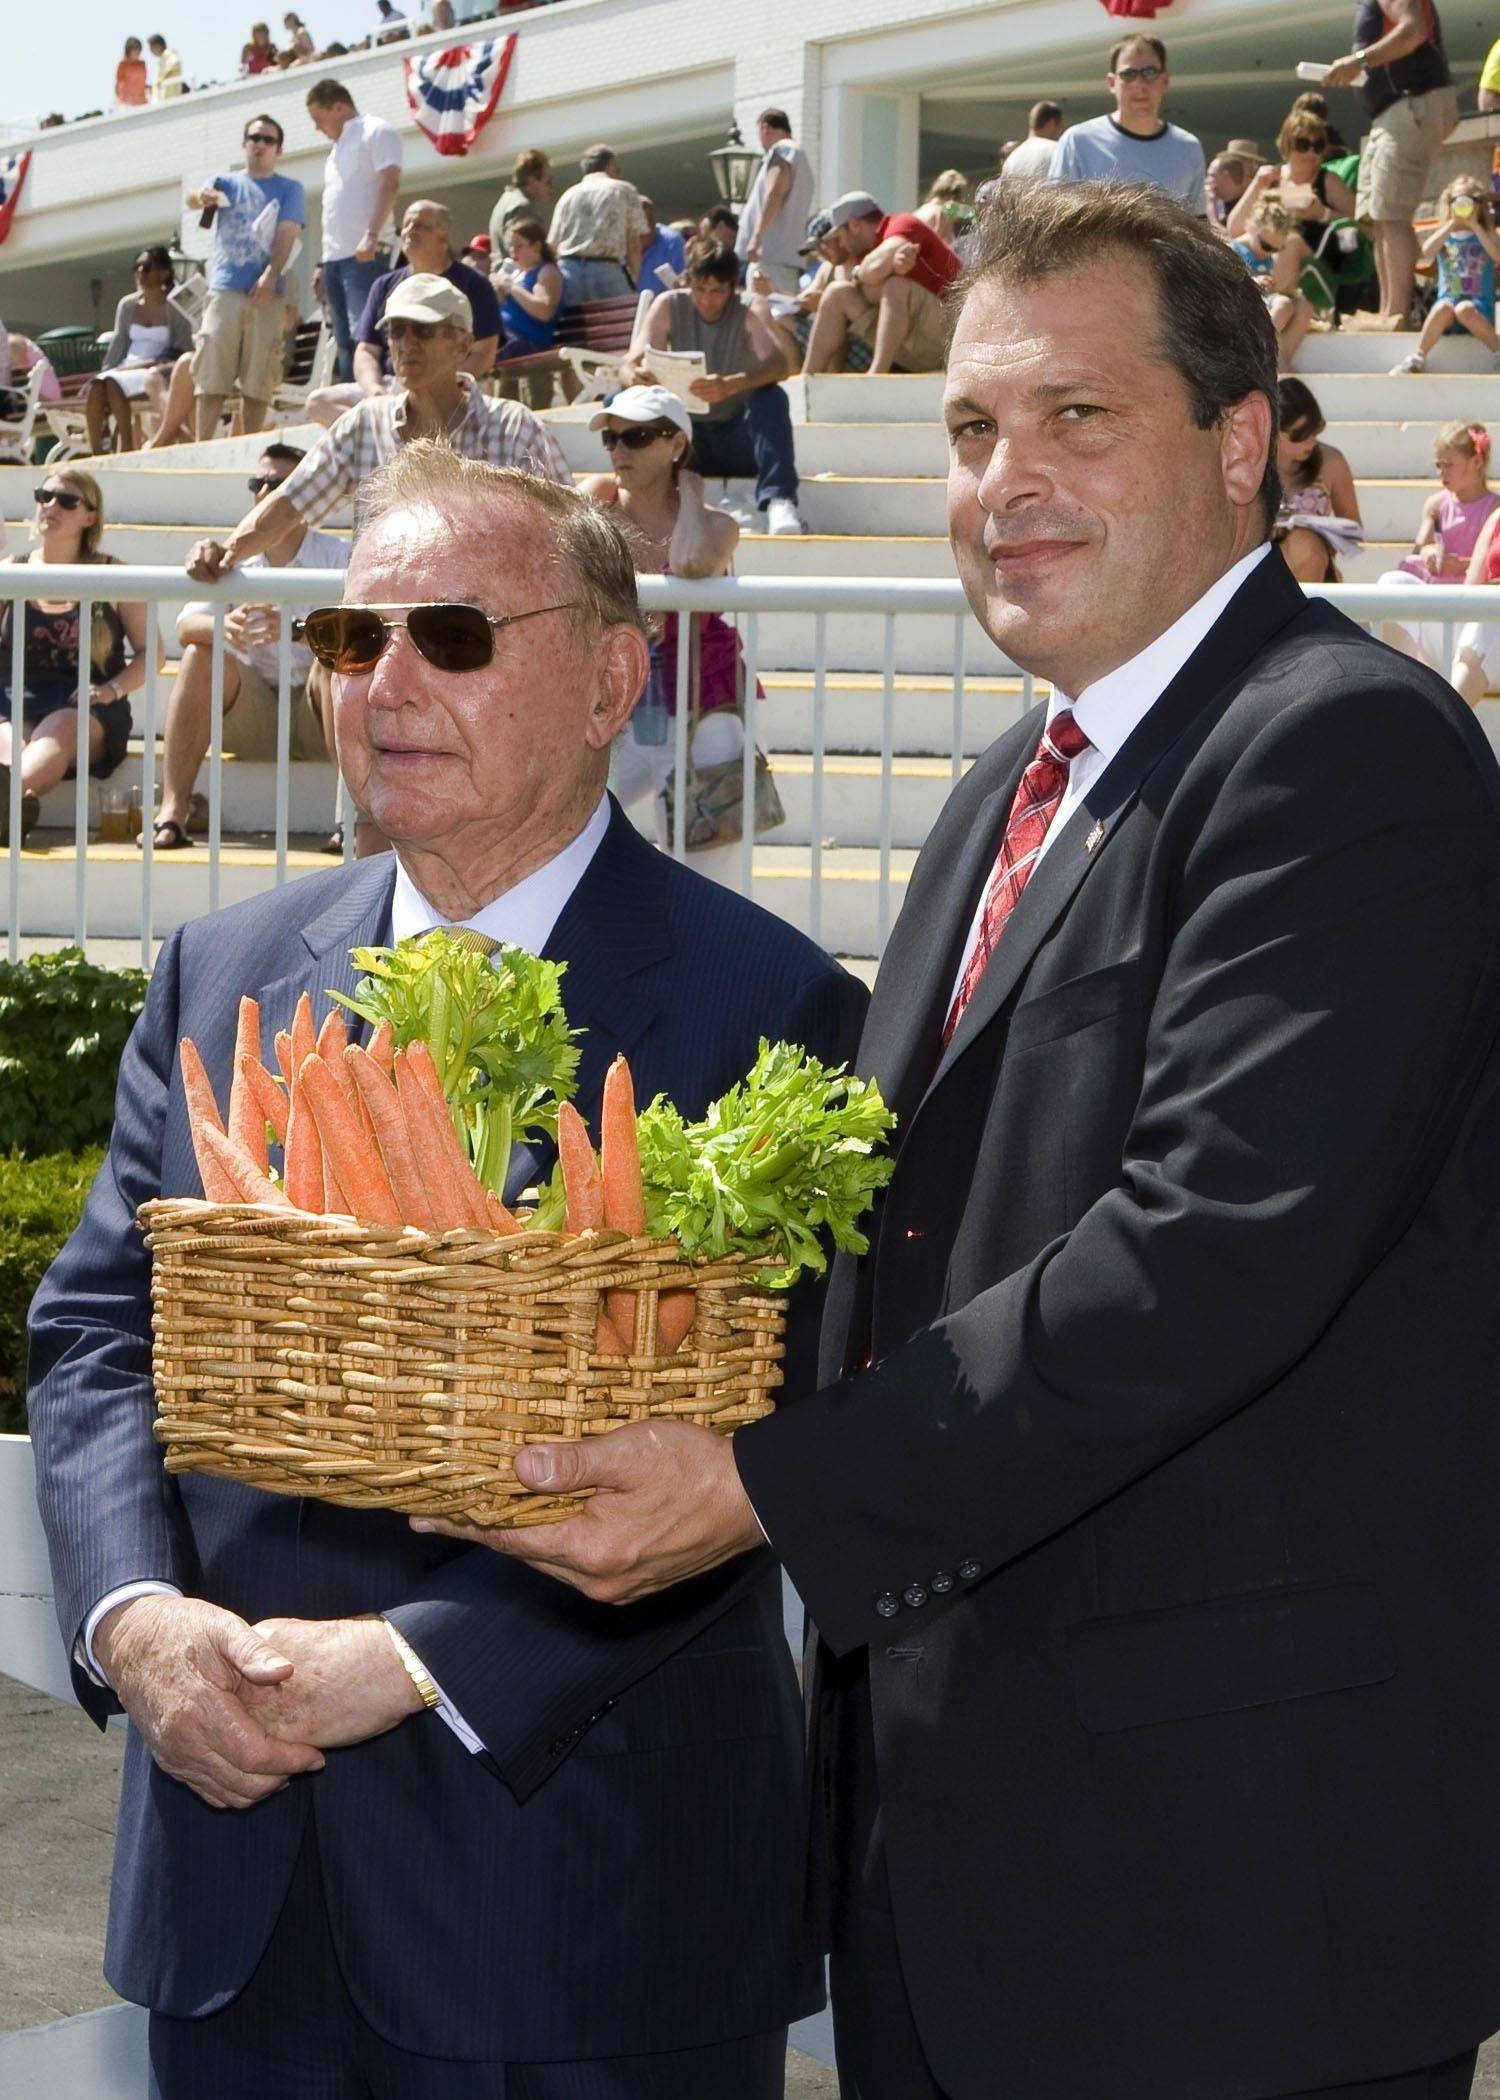 Arlington Park chairman Richard L. Duchossois, left, and general manager Tony Petrillo were on hand to share a retirement gift with General Charley, one of the most popular horses at the track.